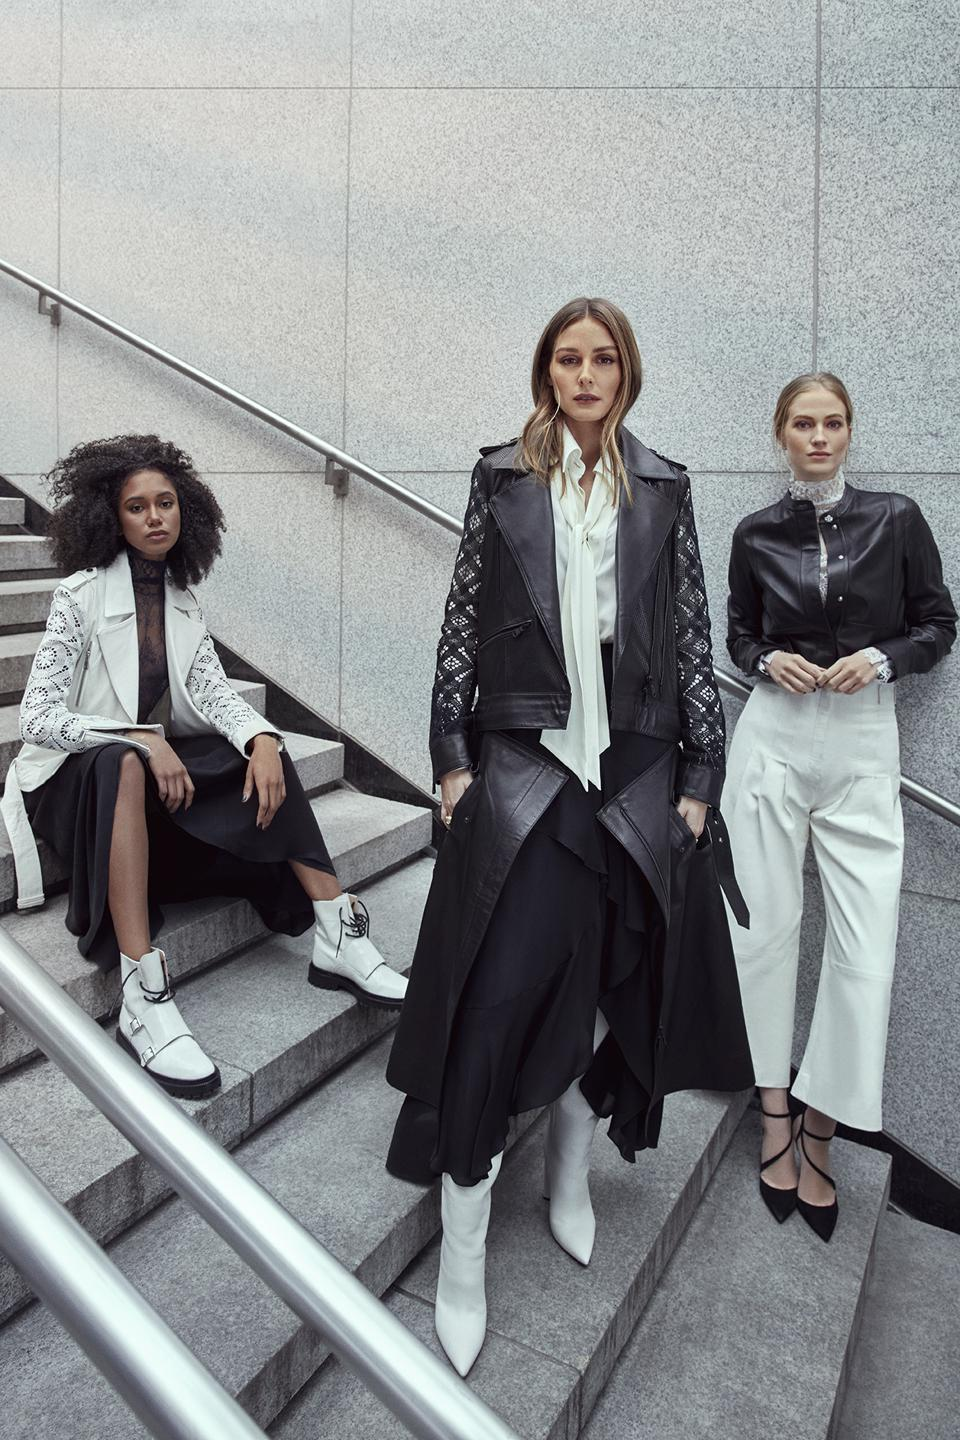 A look from the Olivia Palermo Spring Summer 2020 campaign